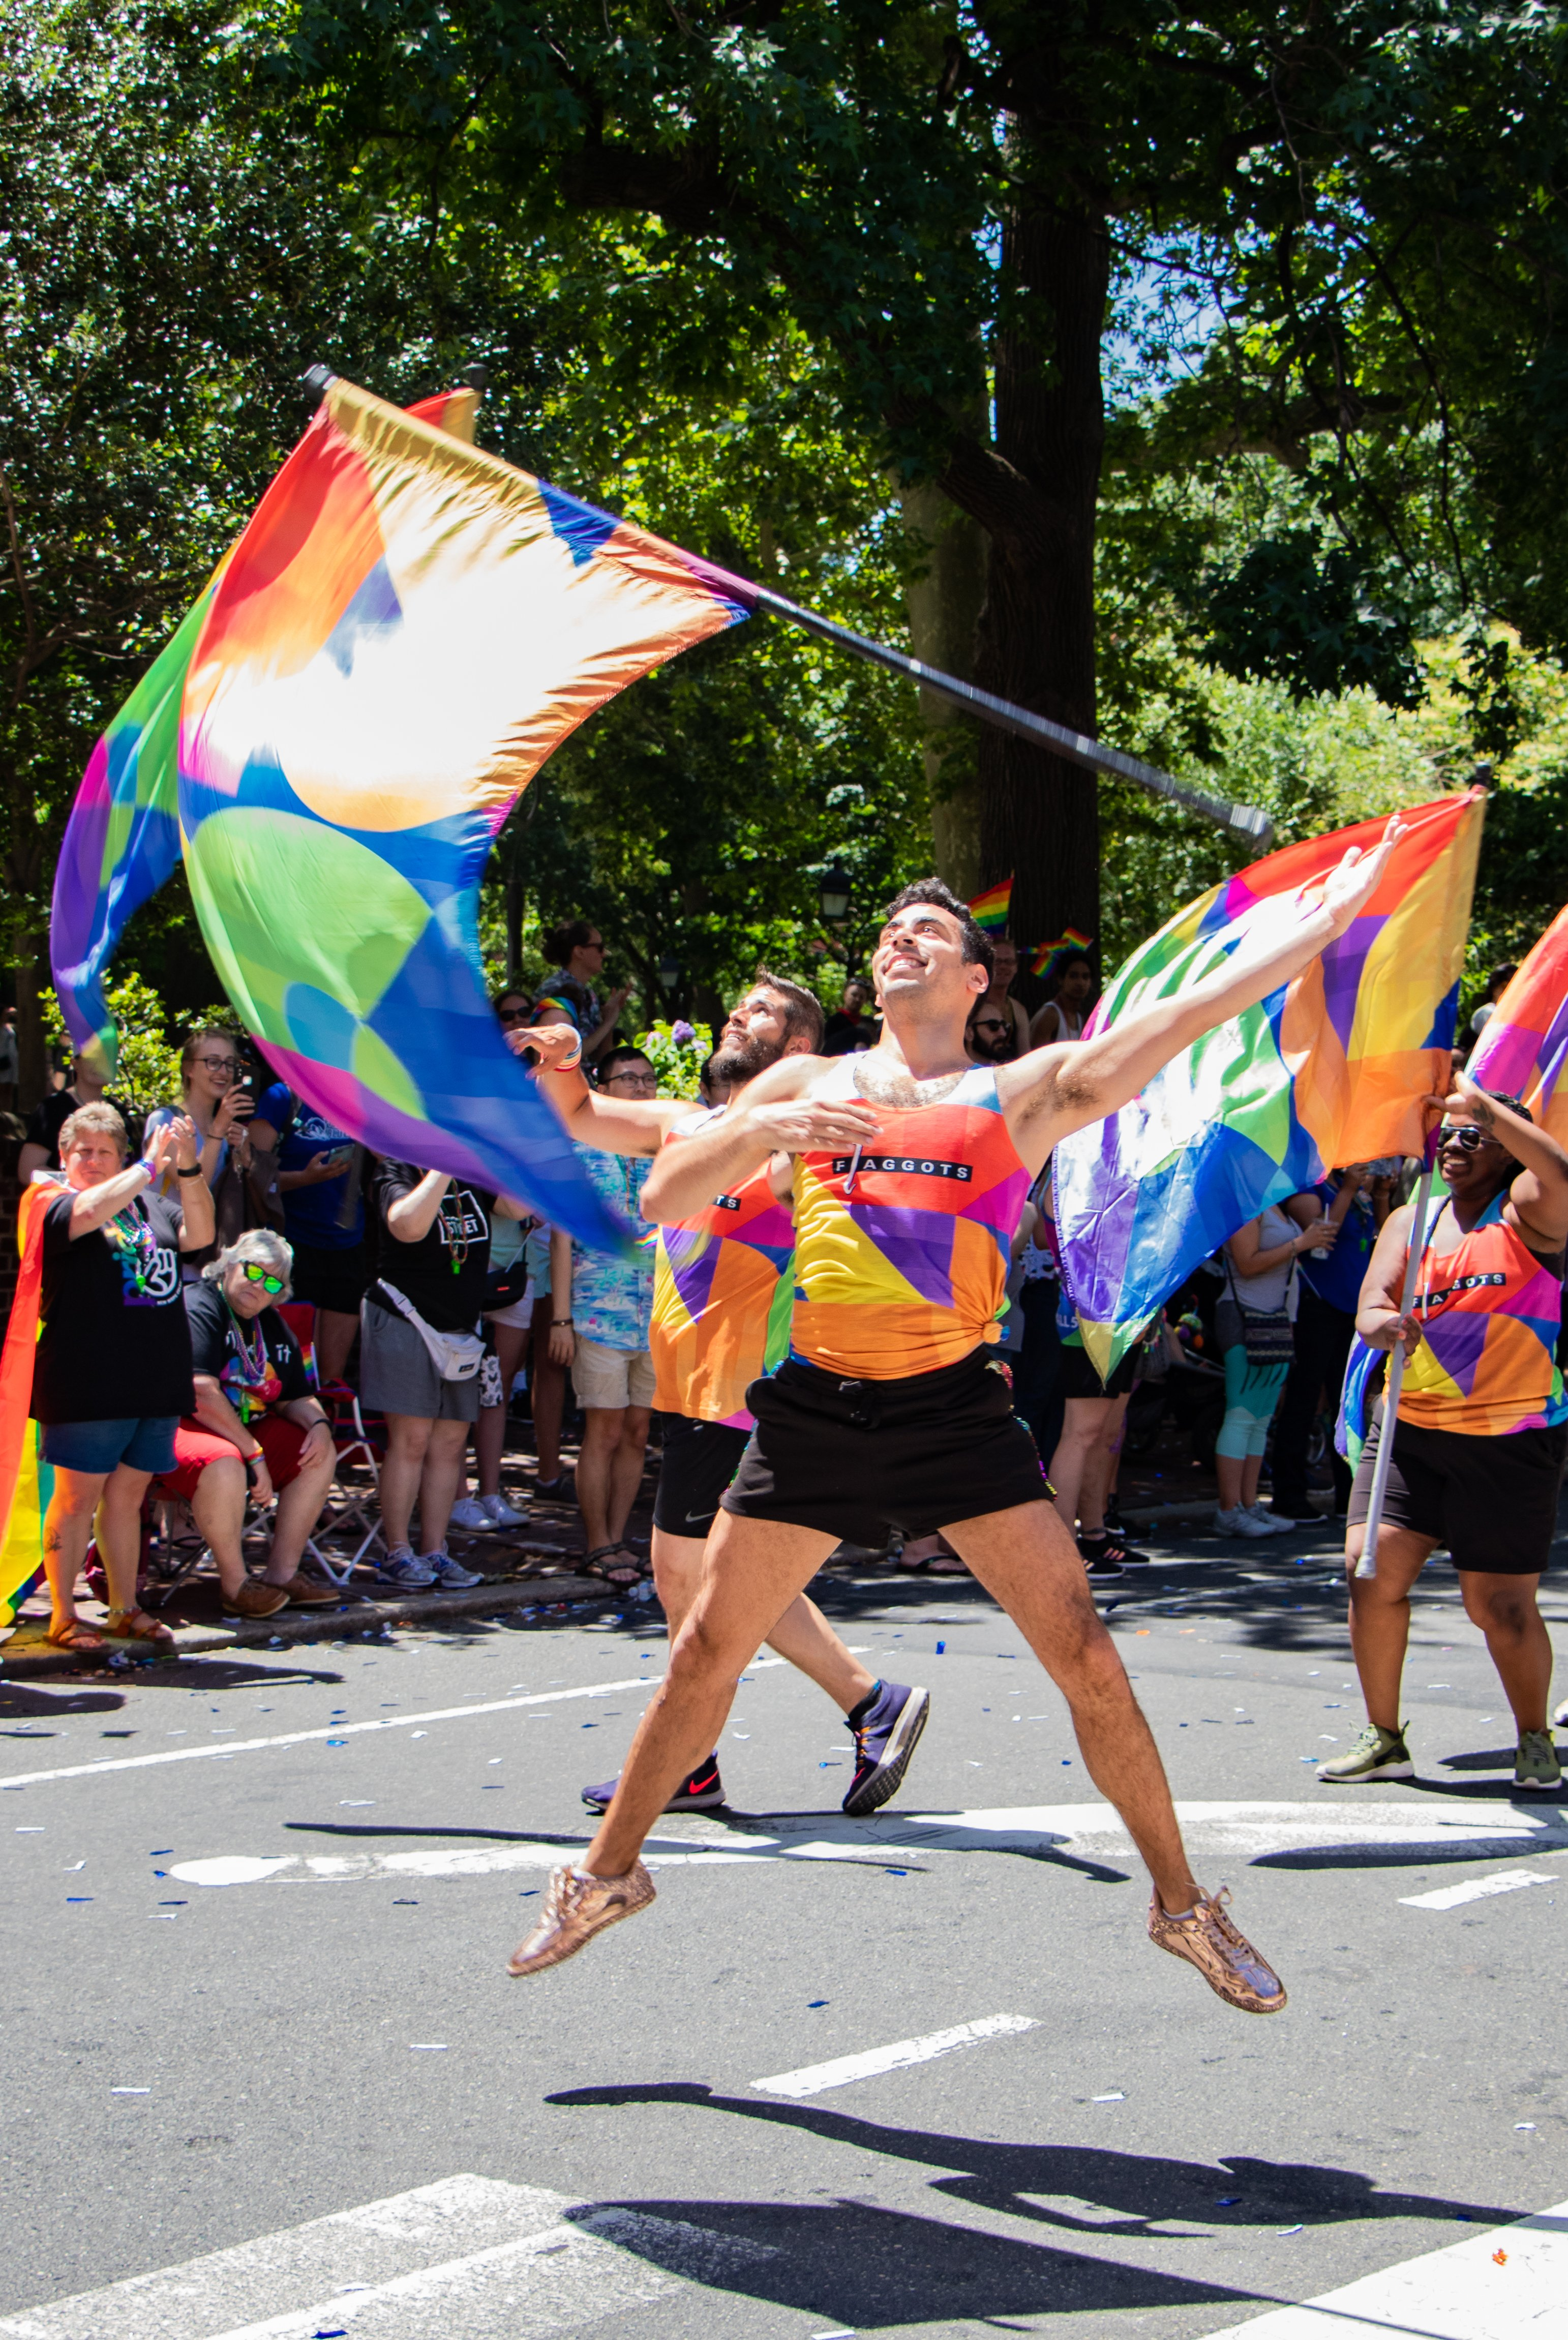 Man dressed in a rainbow outfit jumping mid-air trowing a rainbow flag up